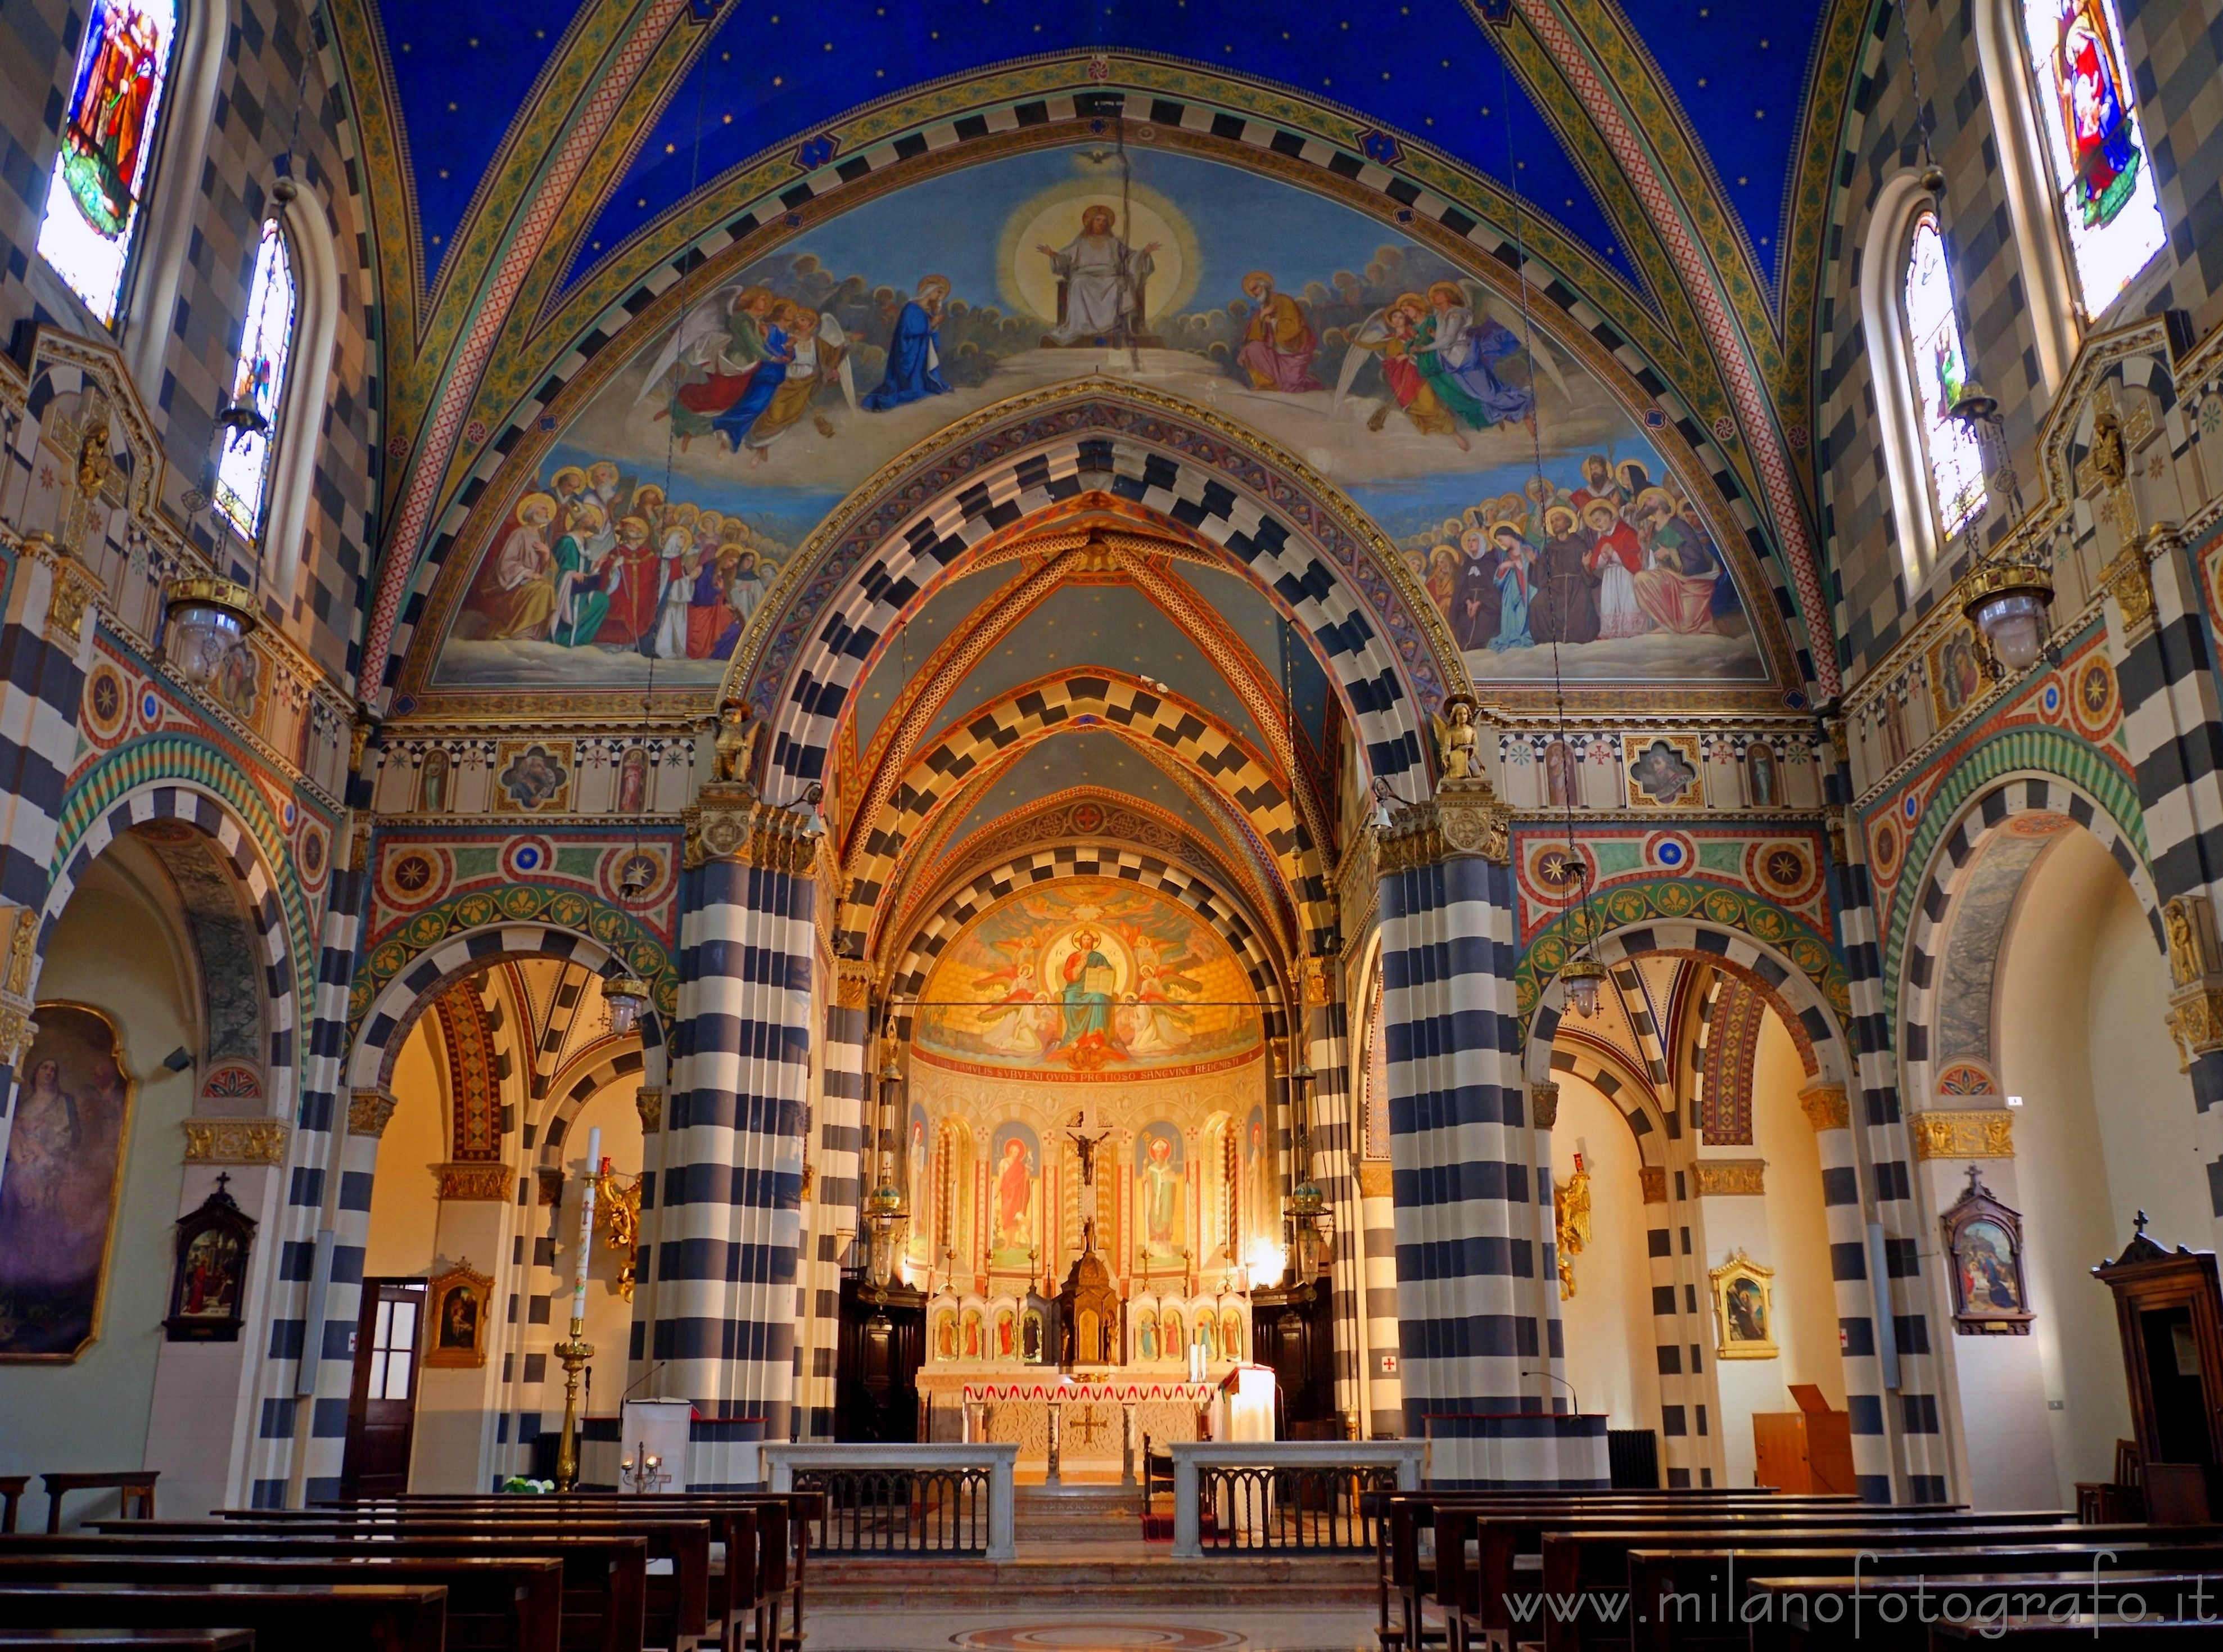 Milan (Italy): The interiors of the Basilica of Sant'Eufemia - Milan (Italy)